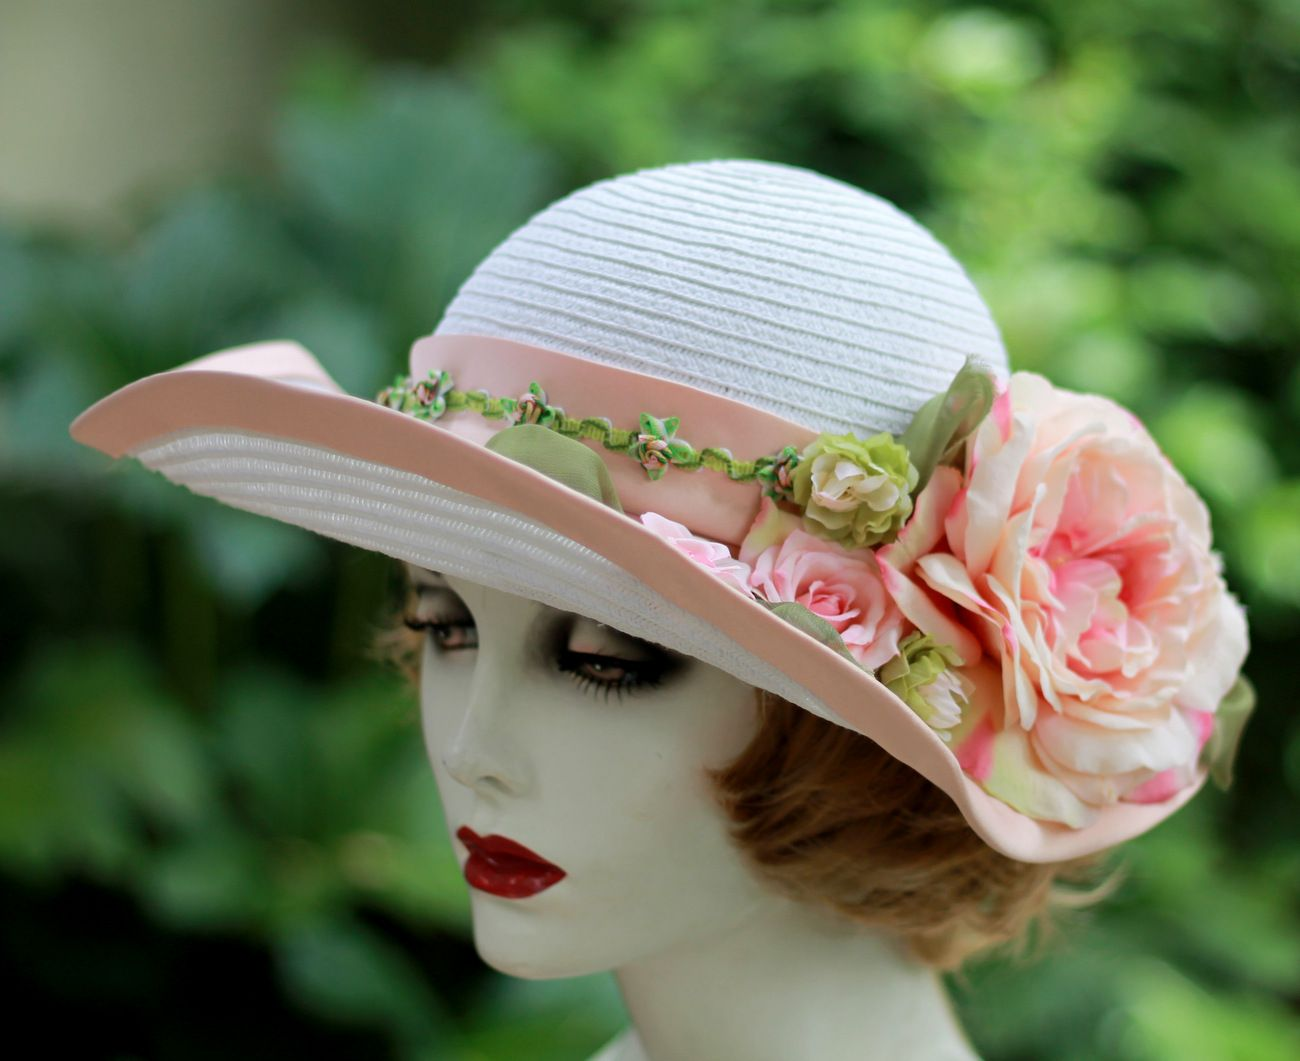 Custom Made Wide Brim White Straw Summer Peach Flowered Hat For Weddings  And Special Ocassions 8924c48555a2